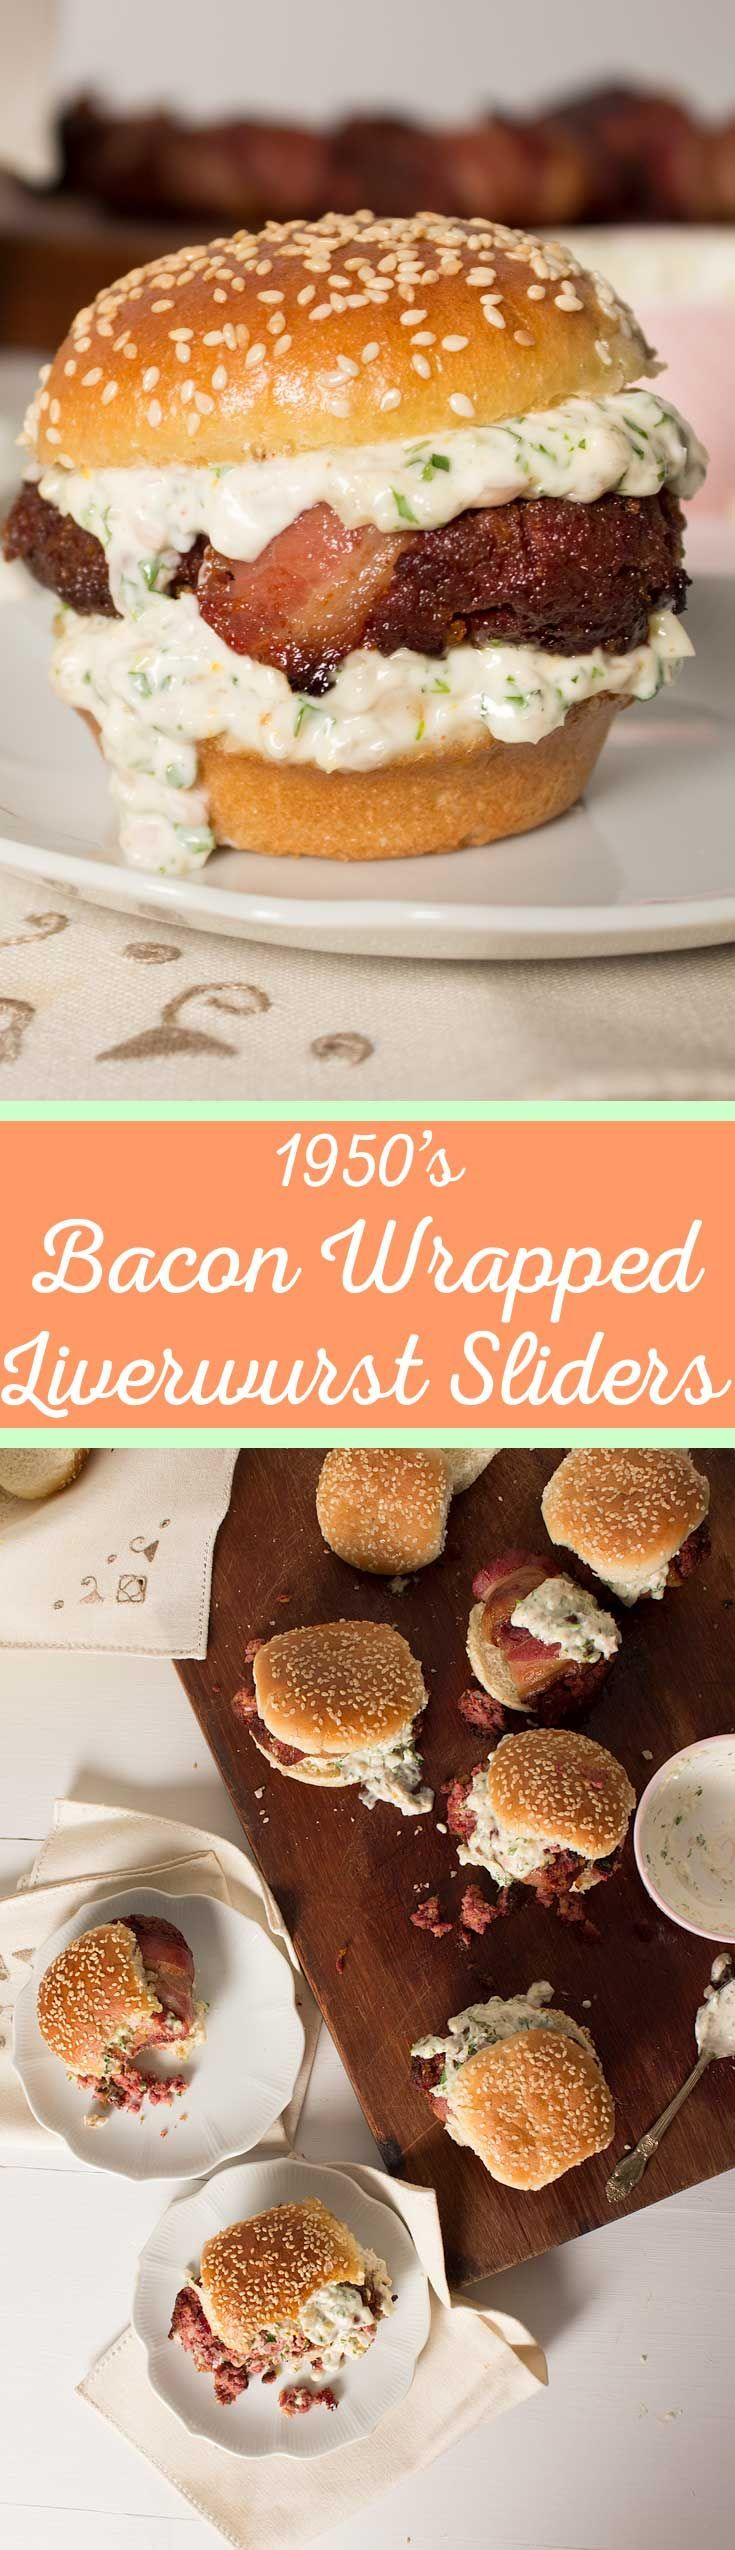 Epic Bacon Wrapped Liverwurst Sliders